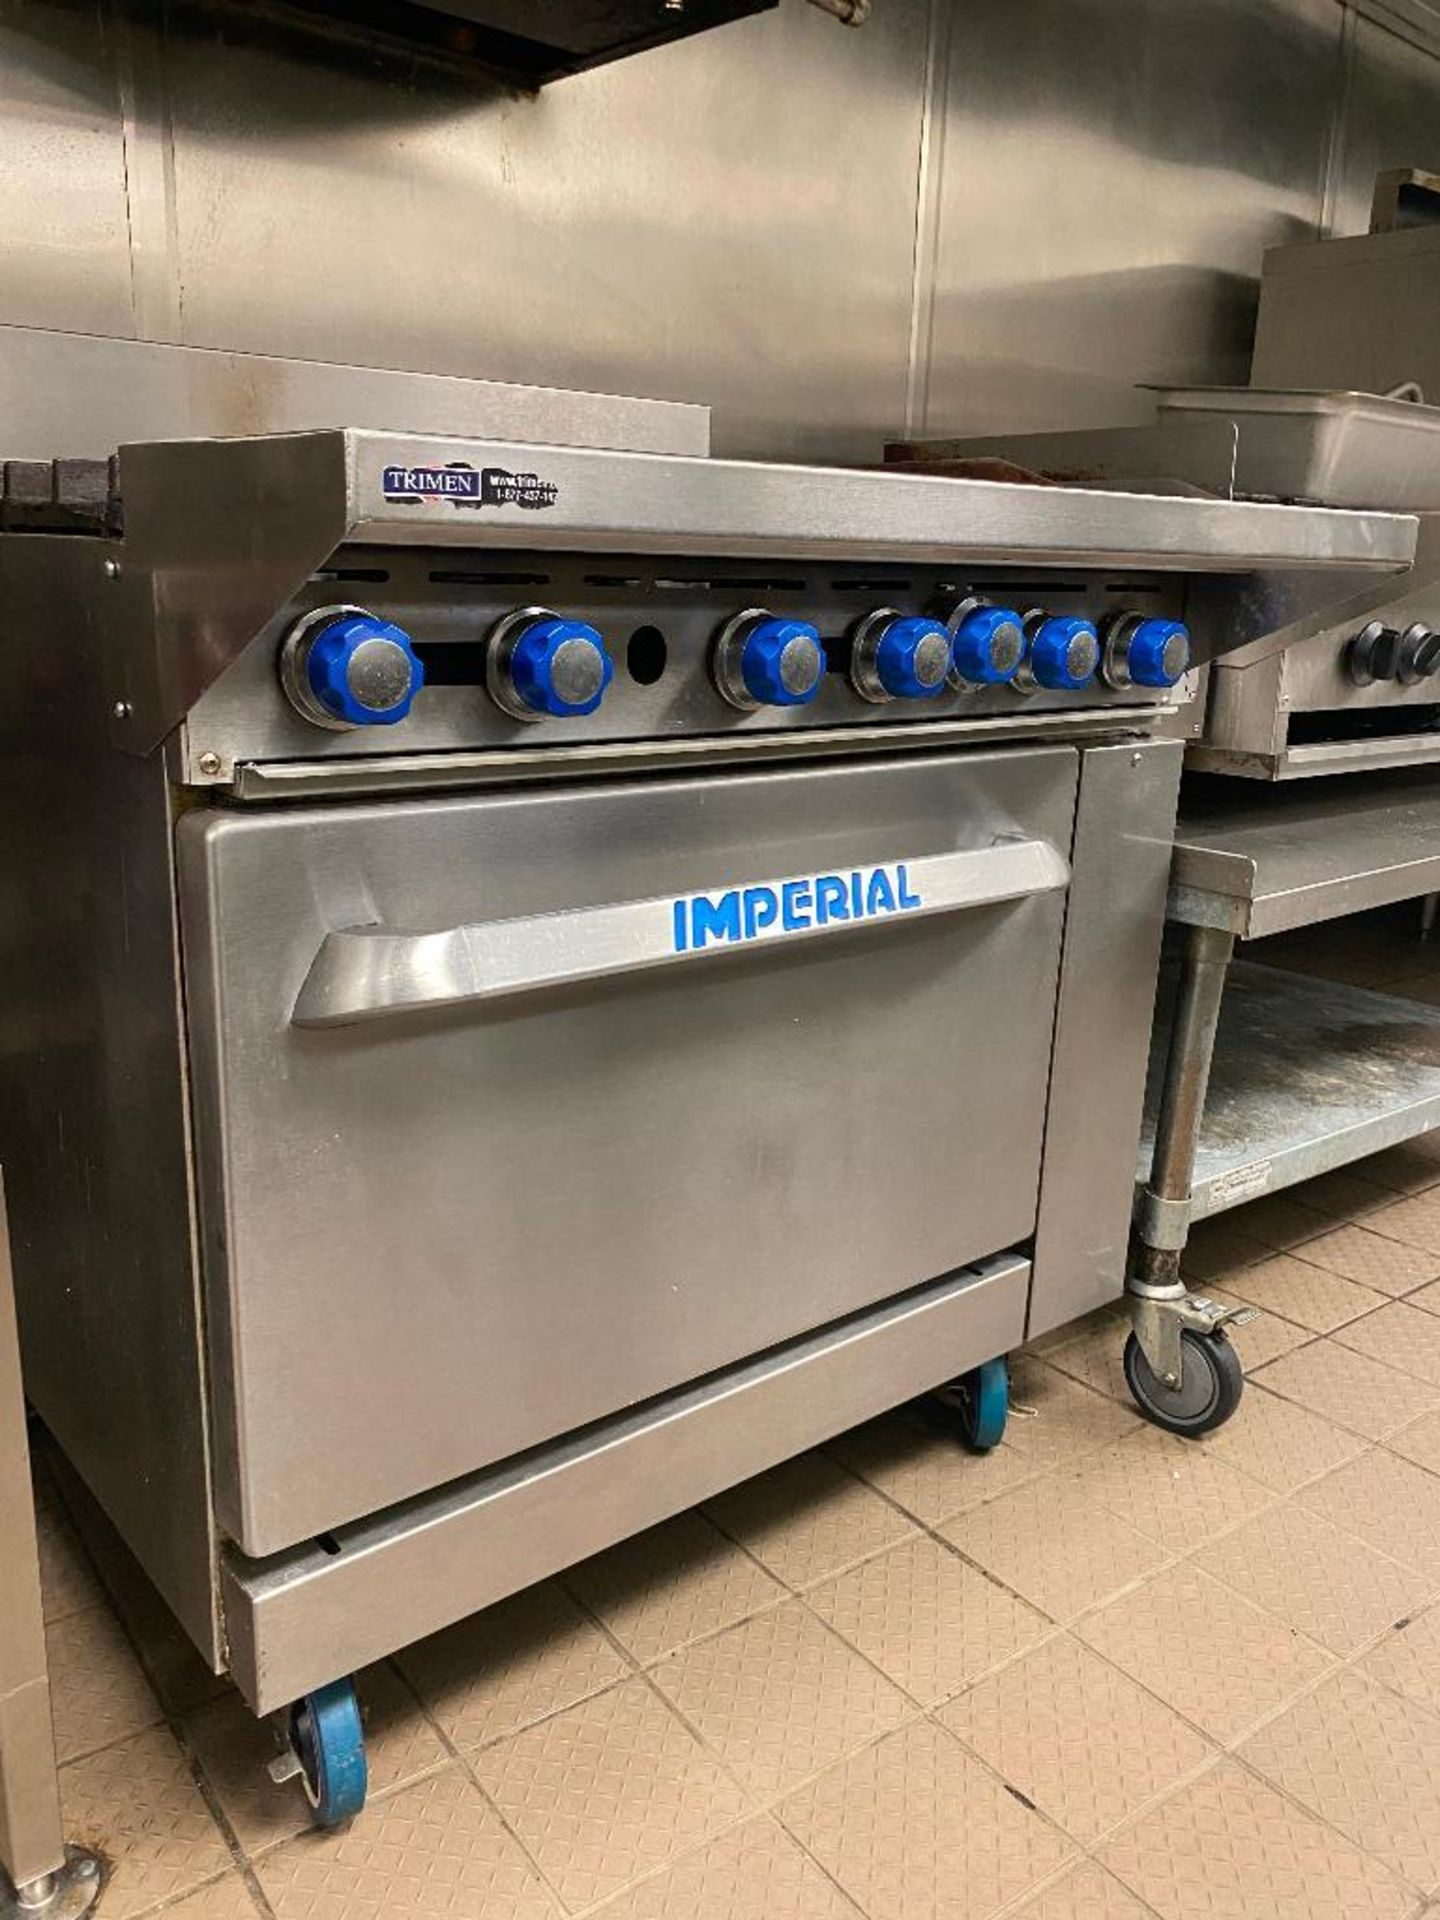 IMPERIAL 6 BURNER RANGE - NOTE: REQUIRES DISCONNECT, PLEASE INSPECT - Image 4 of 5